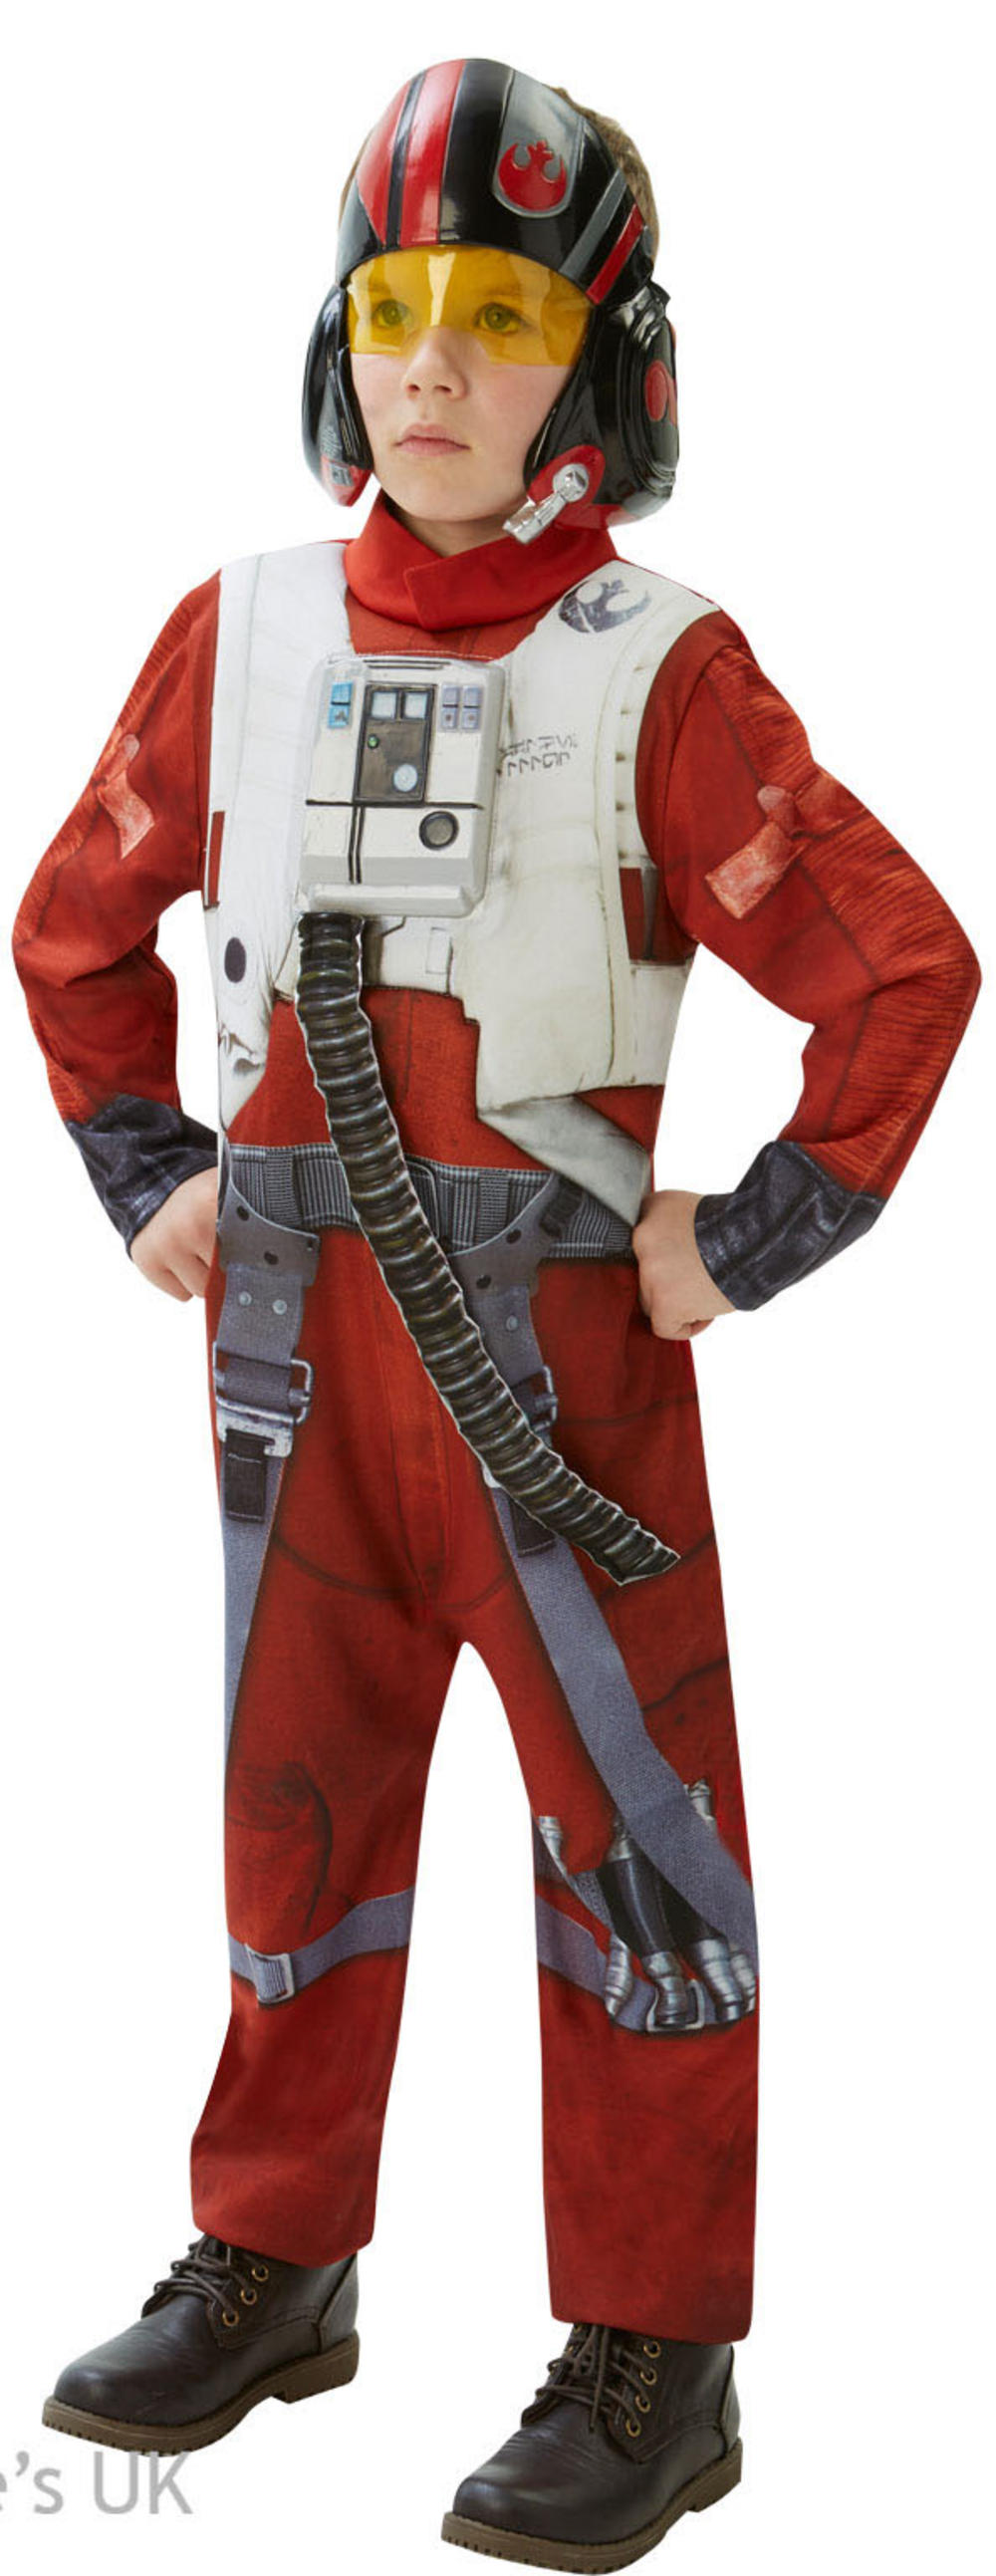 Deluxe X-Wing Fighter Teens The Force Awakens Star Wars Costume